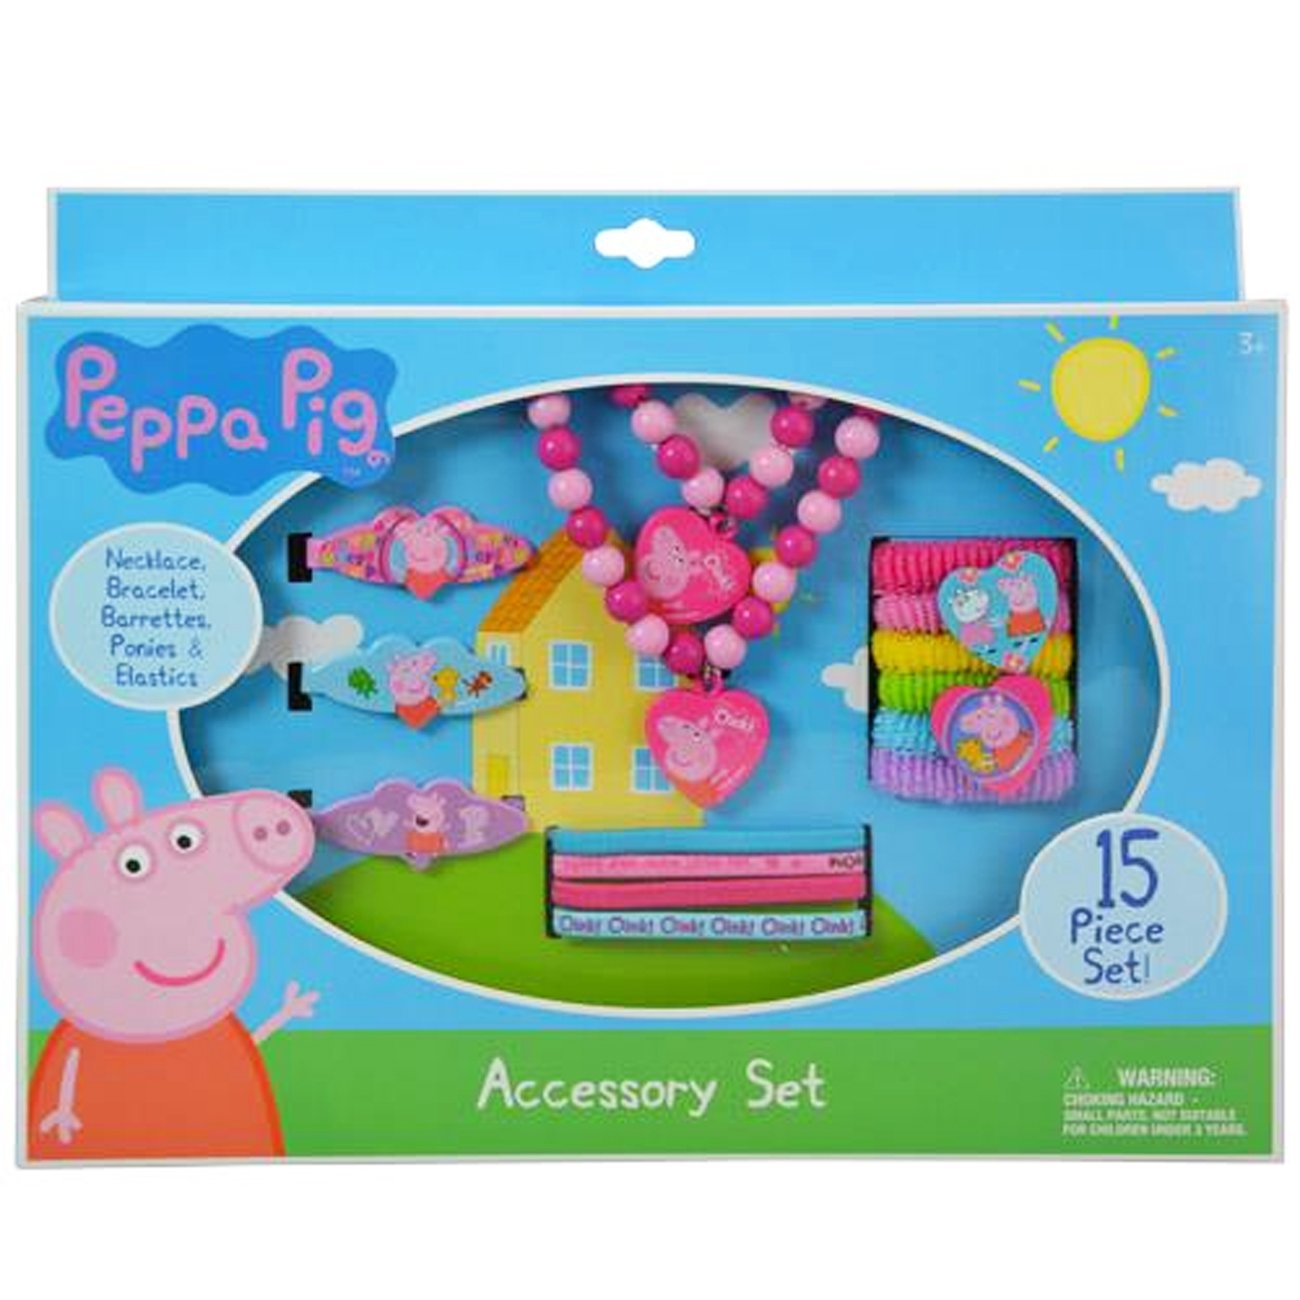 Peppa Pig Necklace Bracelet and Hair Accessory Set 15 Piece PG243